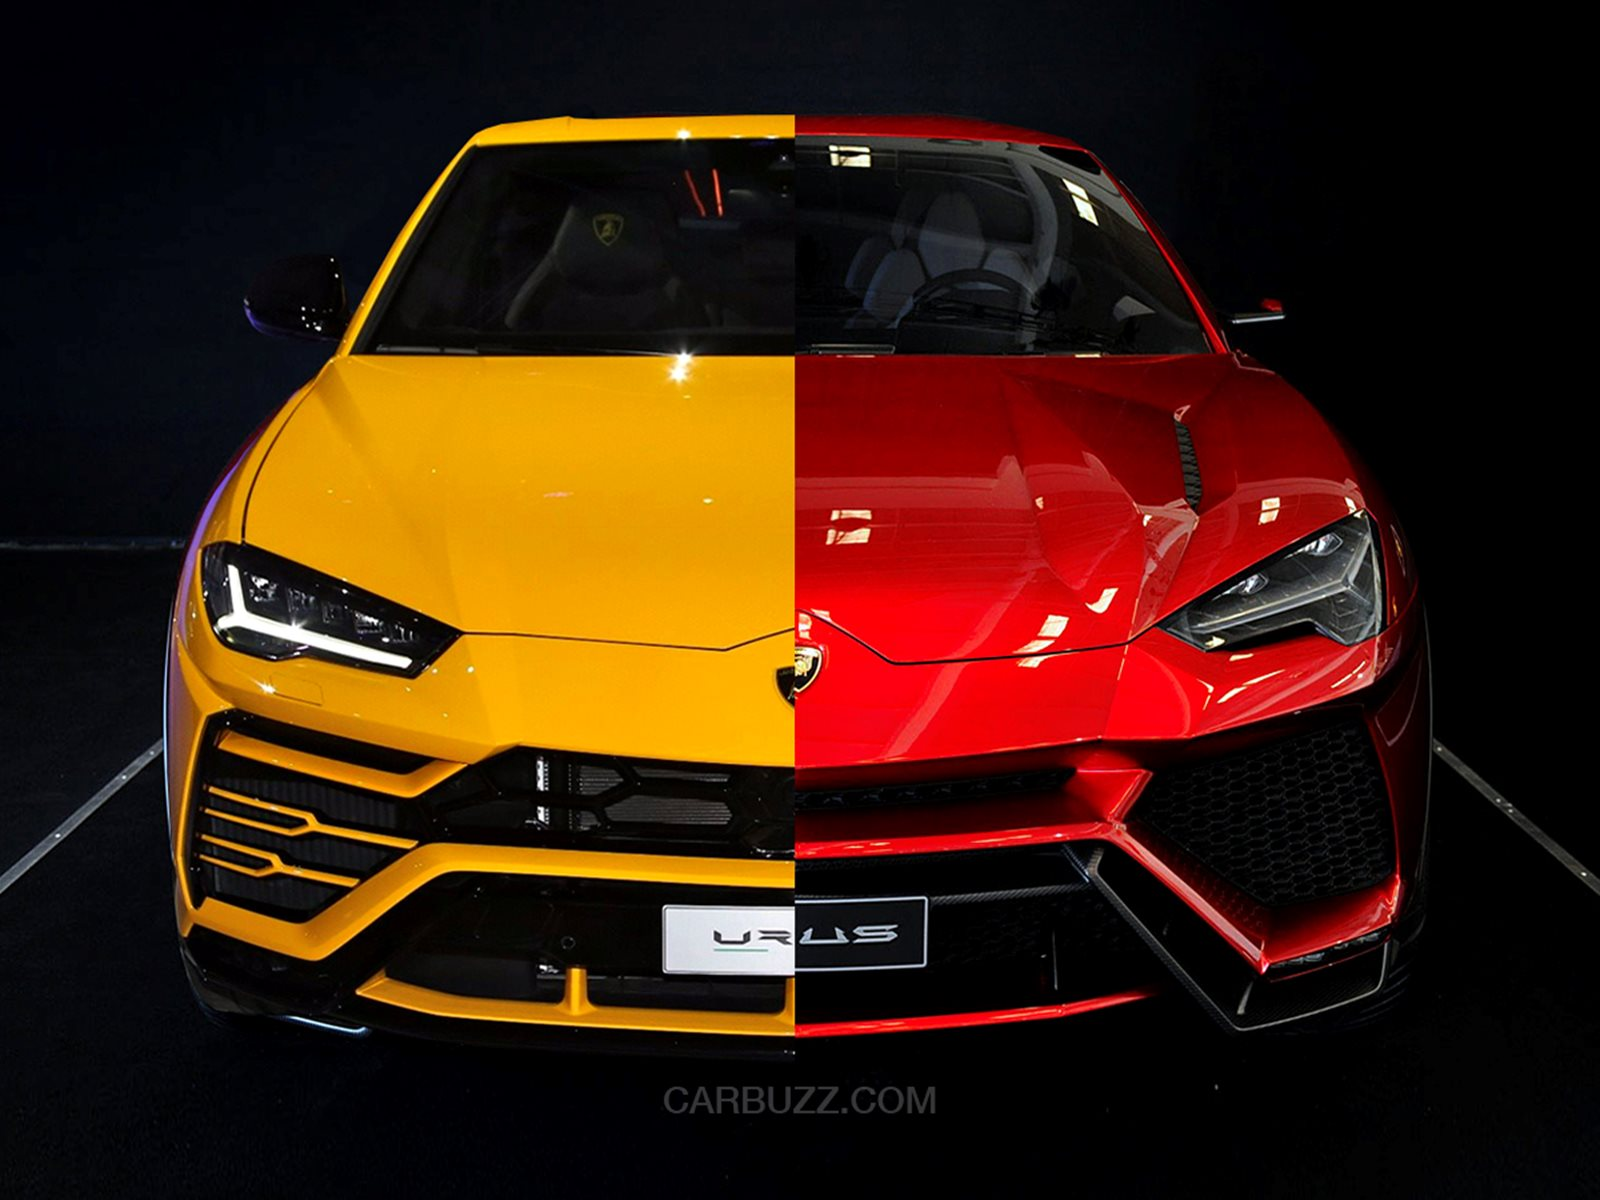 Lamborghini Urus Design Changes: 2012 Concept VS 2017 Final Version ...